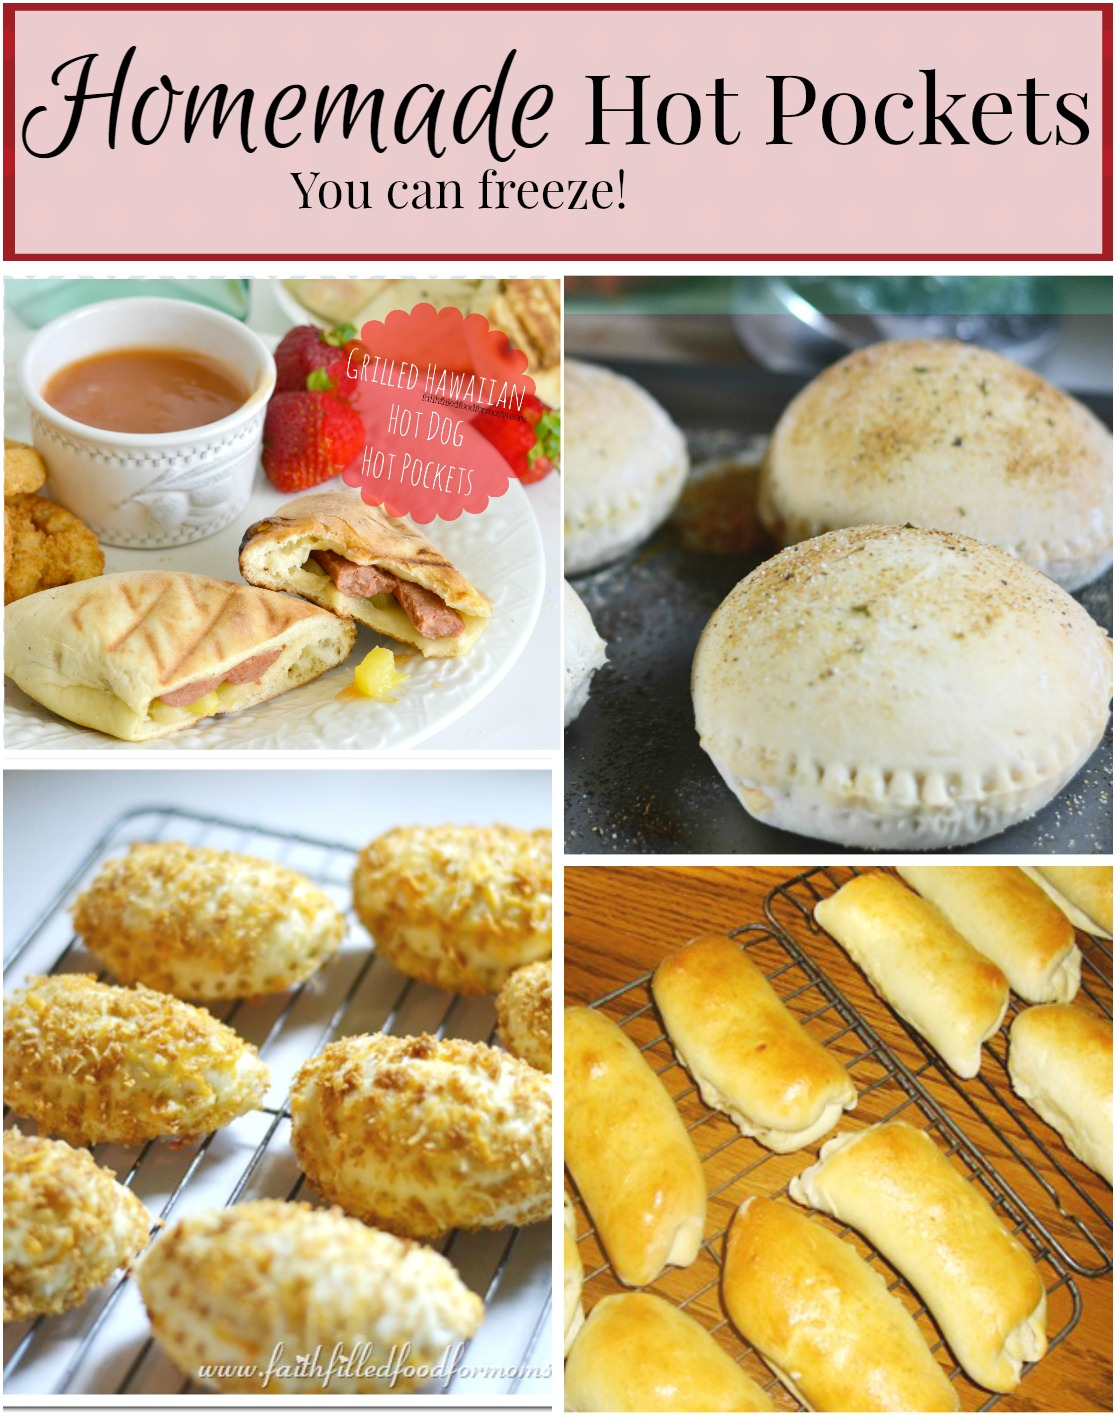 Homemade hot pockets for freezer meals faith filled food for moms forumfinder Images